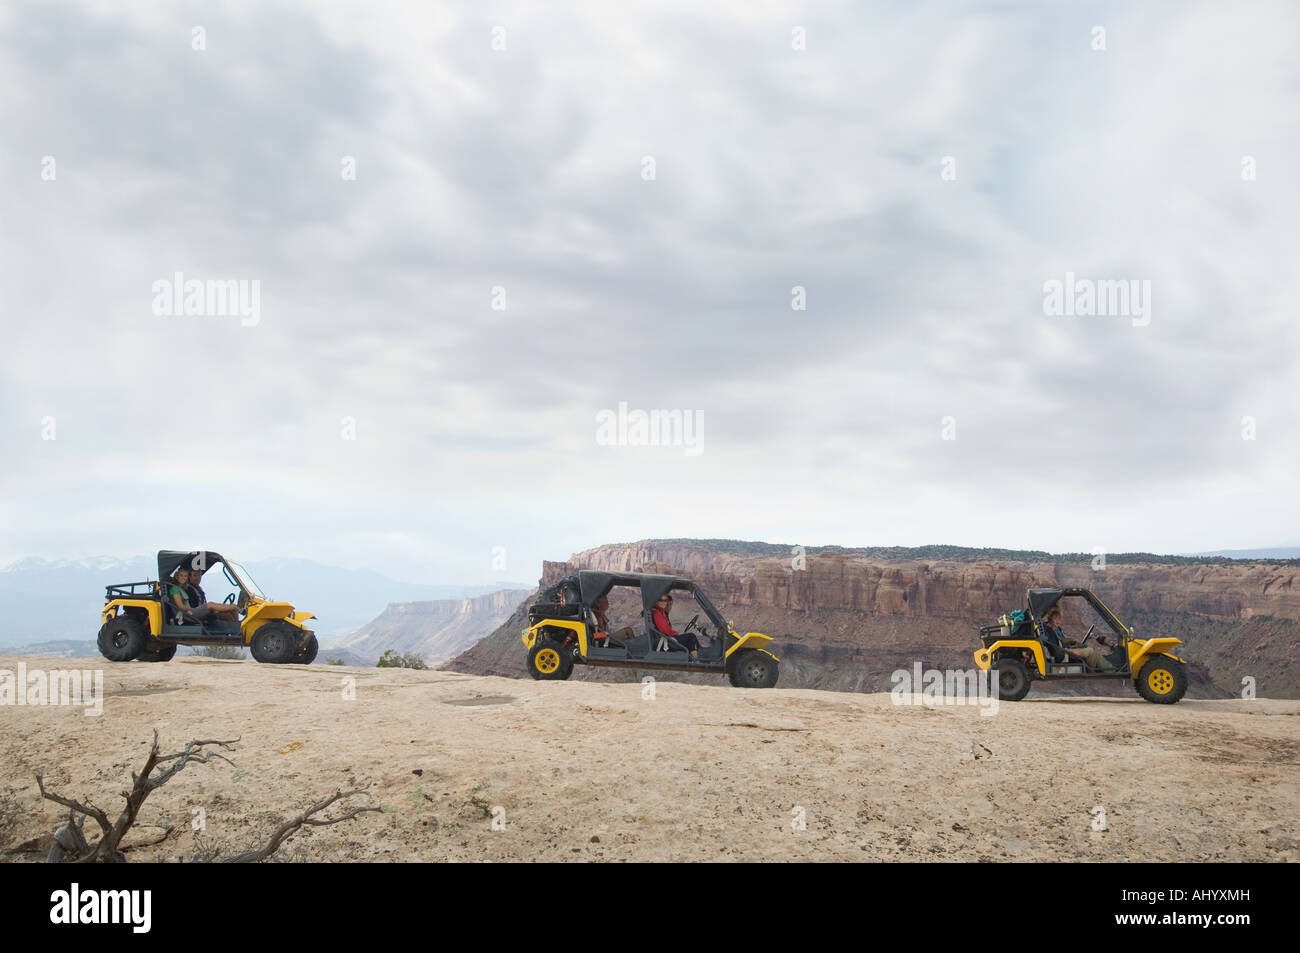 People in off-road vehicles on rock formation - Stock Image